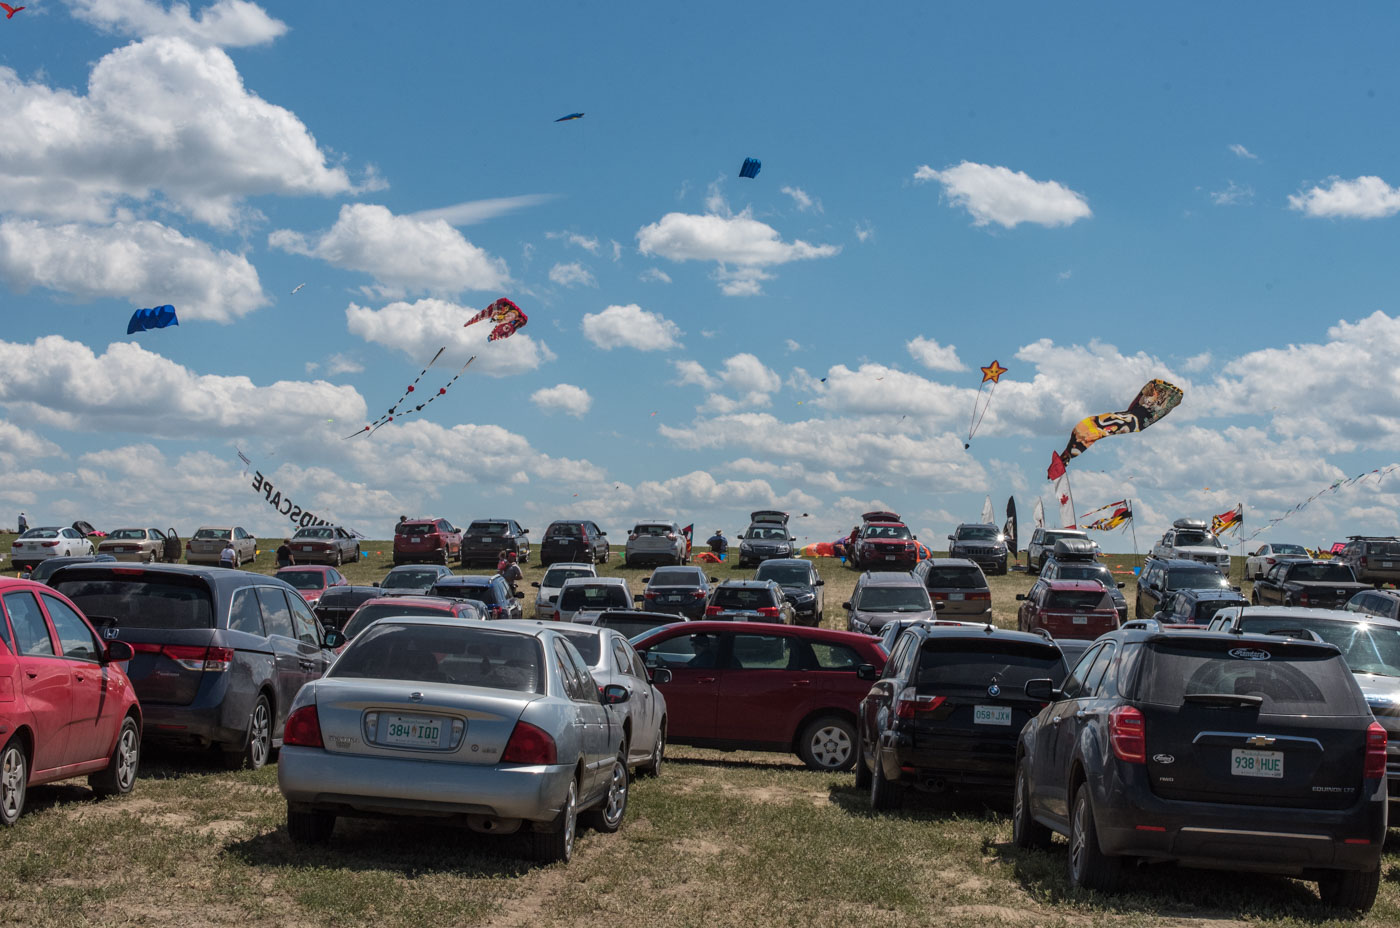 Arriving at the kite festival